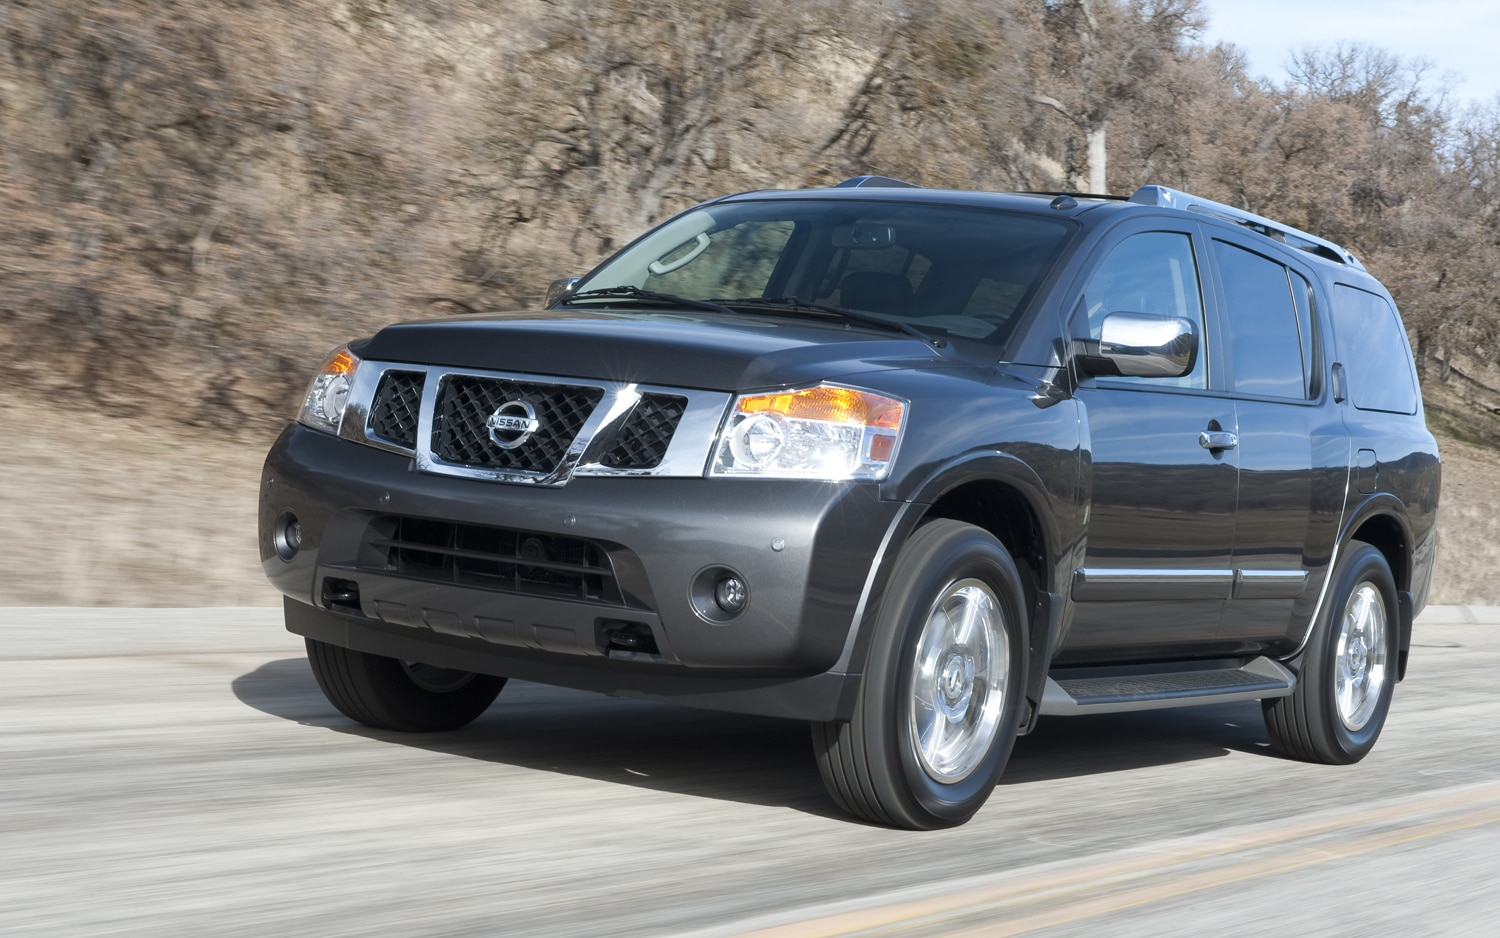 2012 Nissan Armada Front Three Quarter In Motion 21